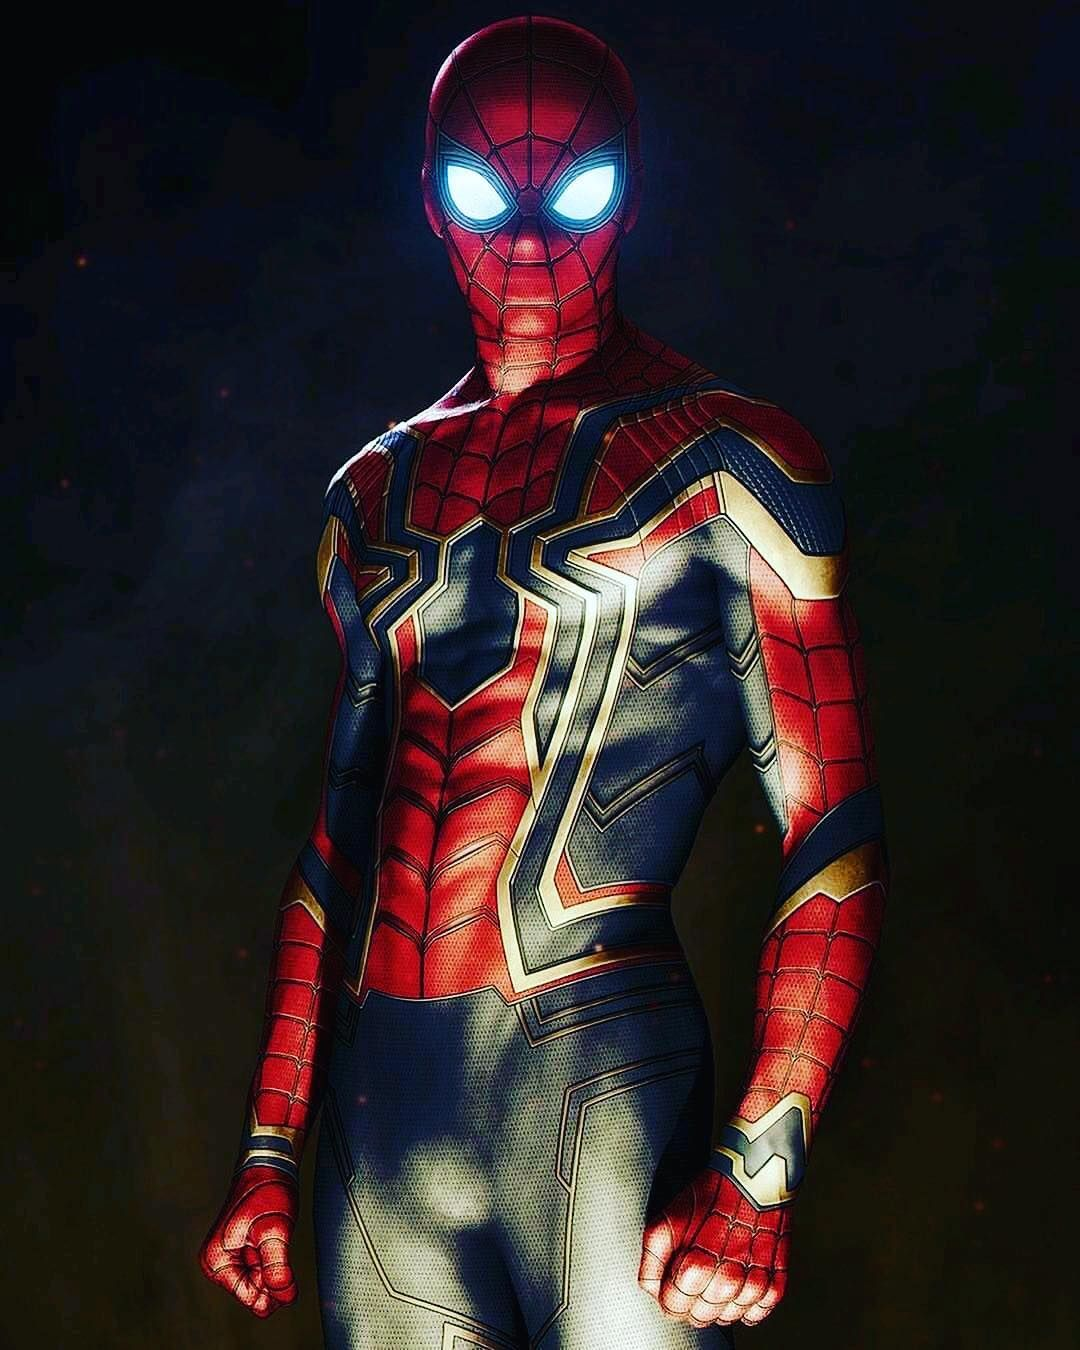 Pin By Bladrunner On Marvel But Mainly Spiderman